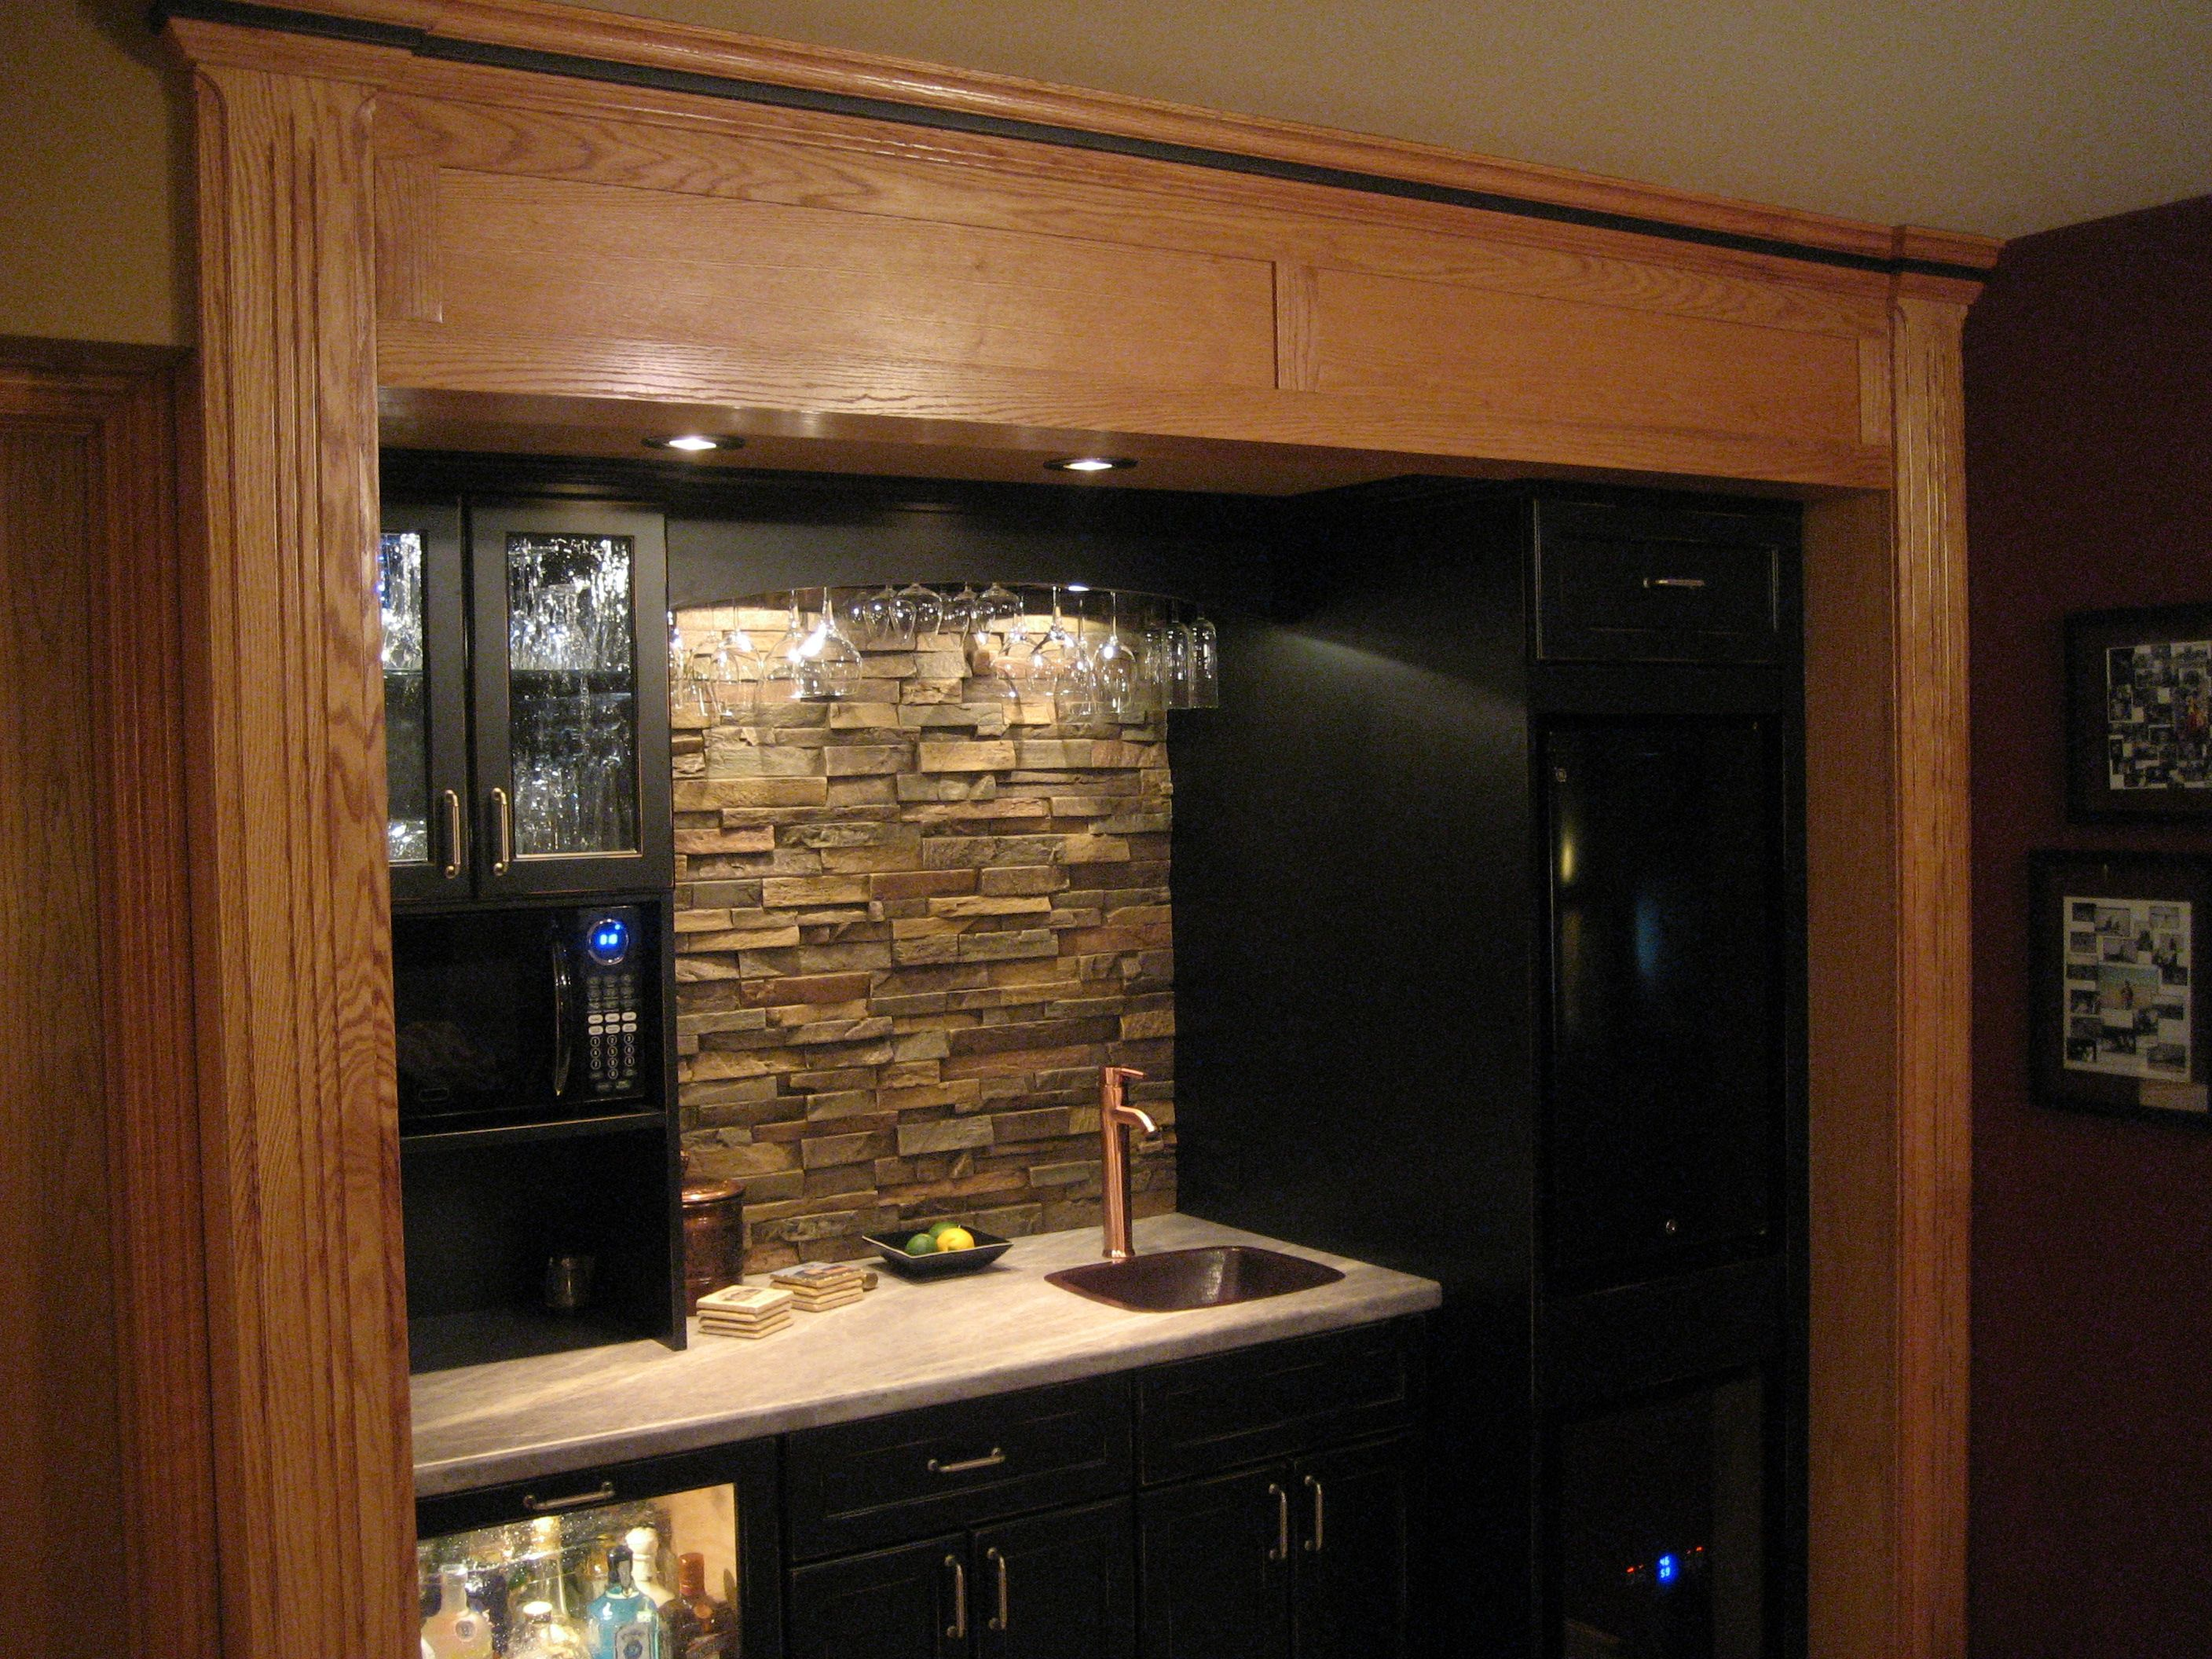 stone backsplash ideas for kitchen adding stone veneer into the kitchen design was a great - Stone Kitchen Backsplash